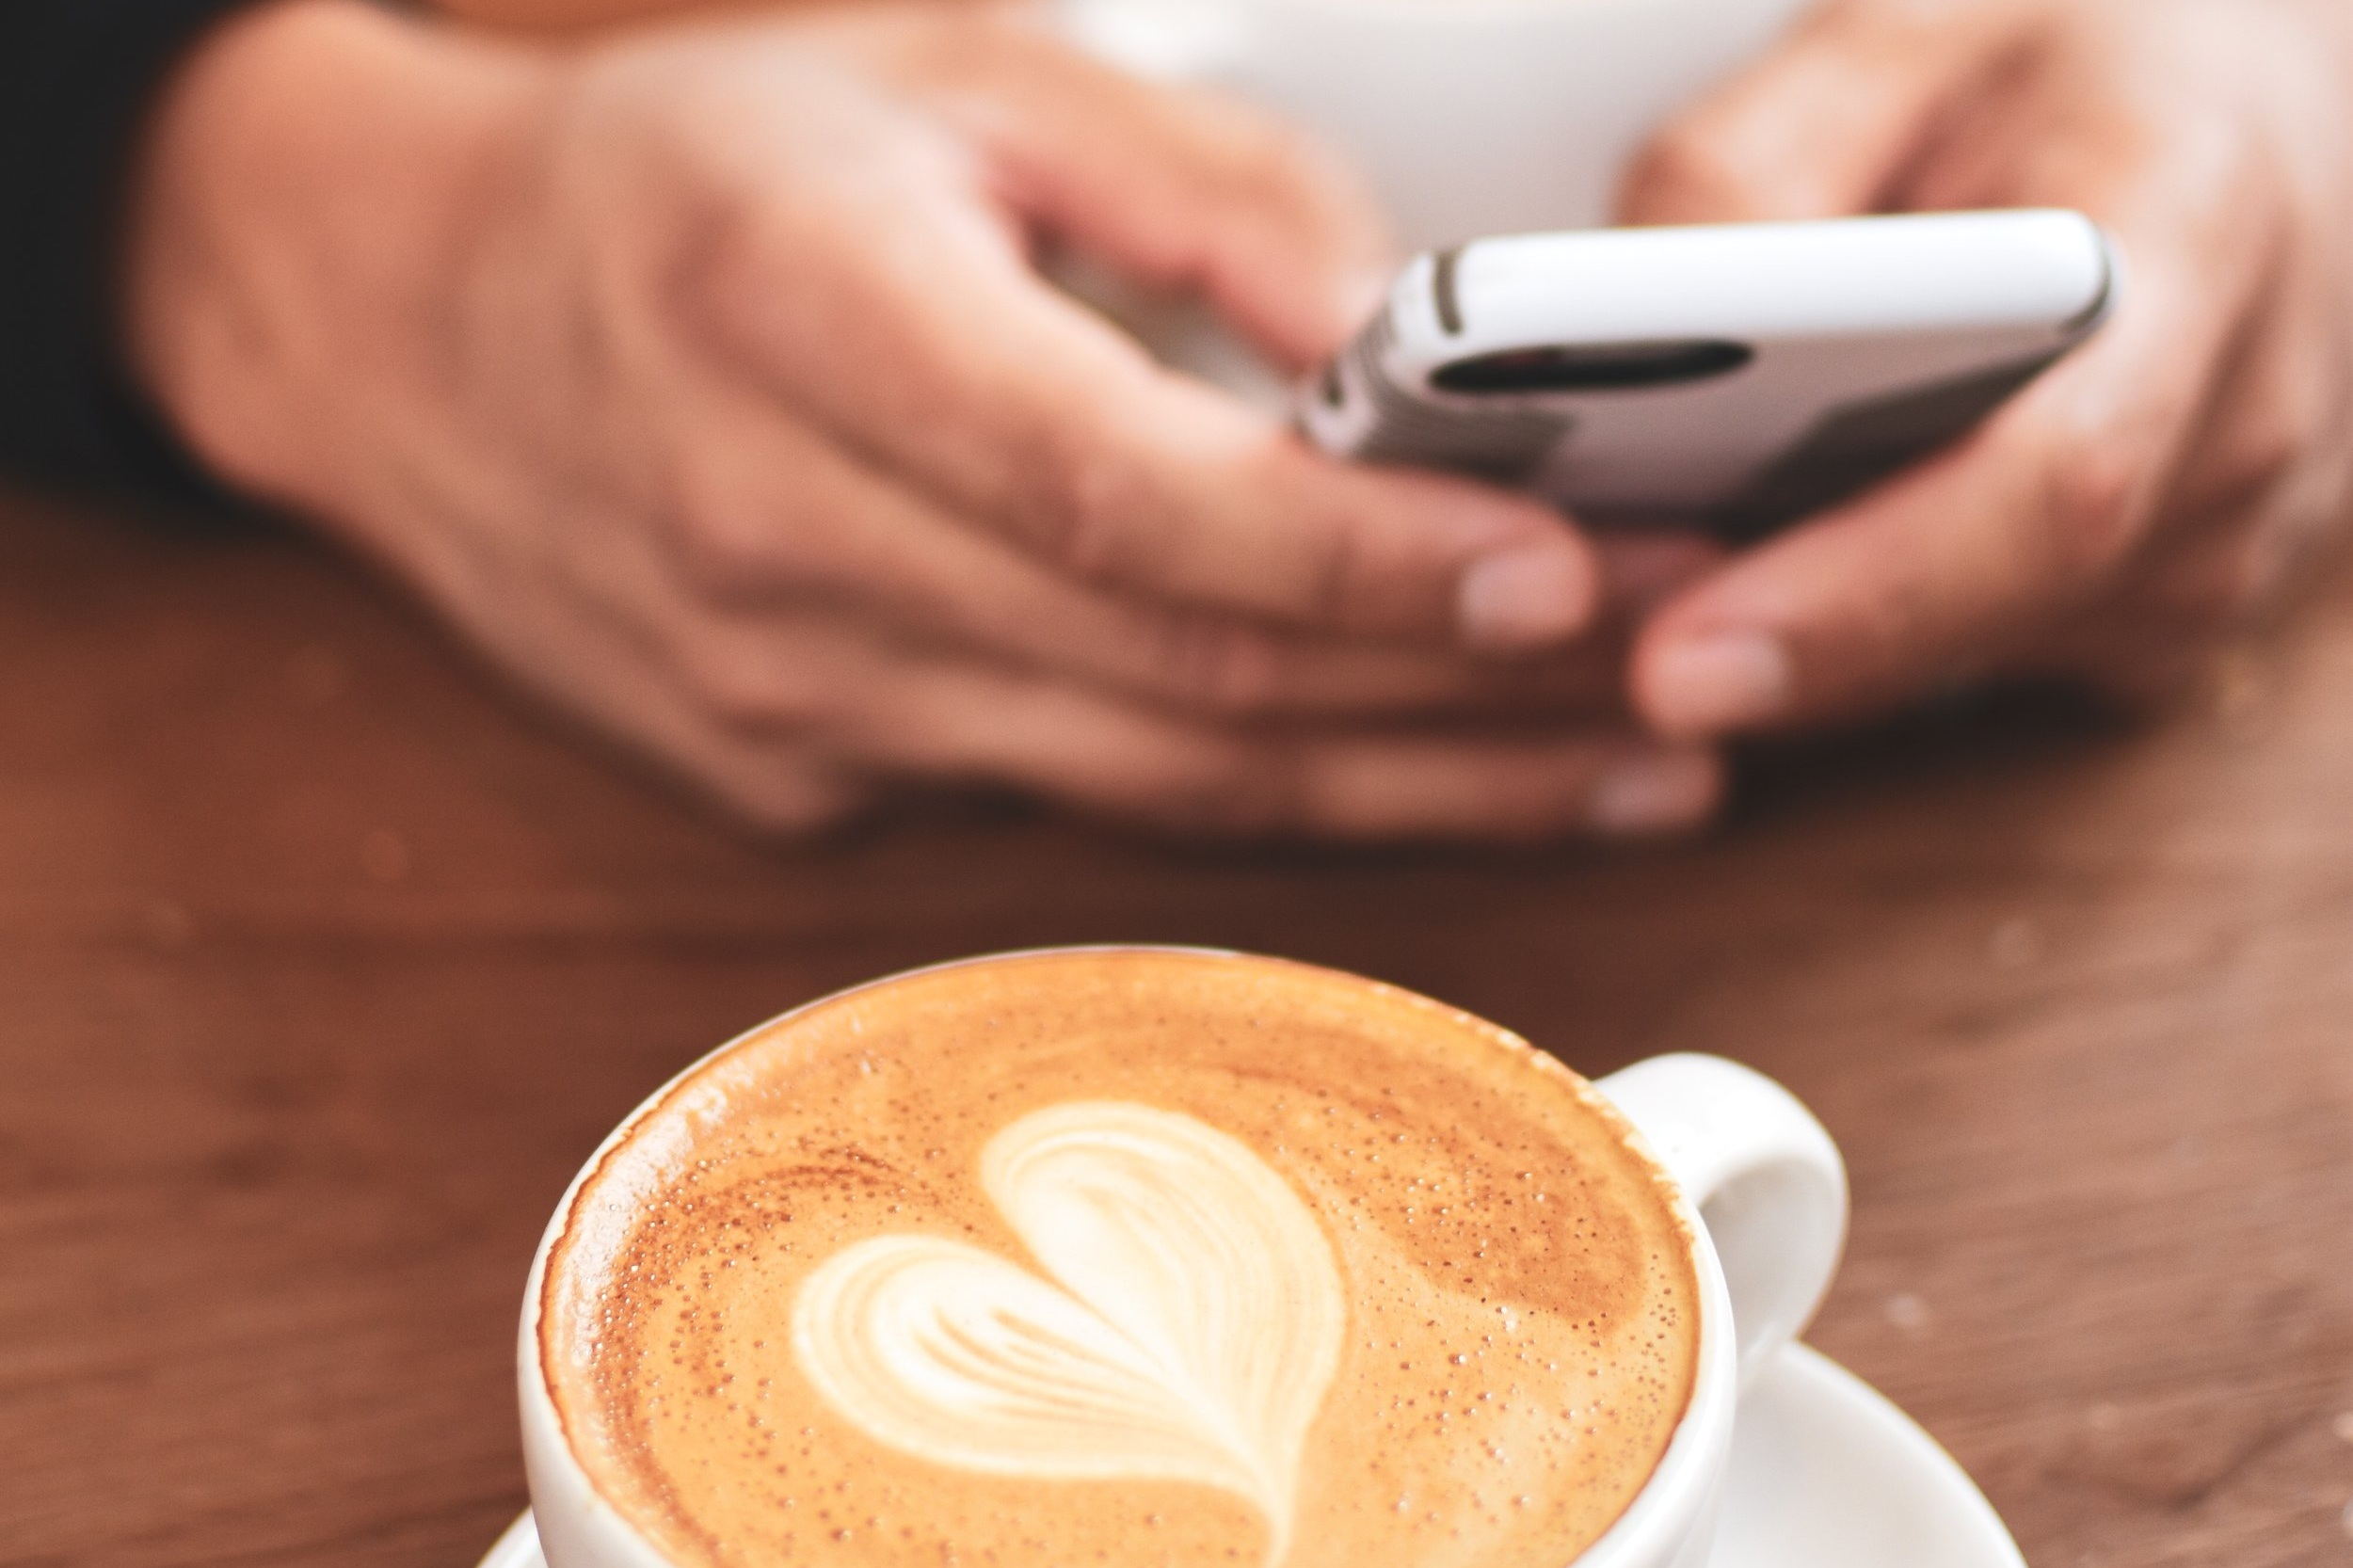 latte+heart+and+phone+in+hands.jpg